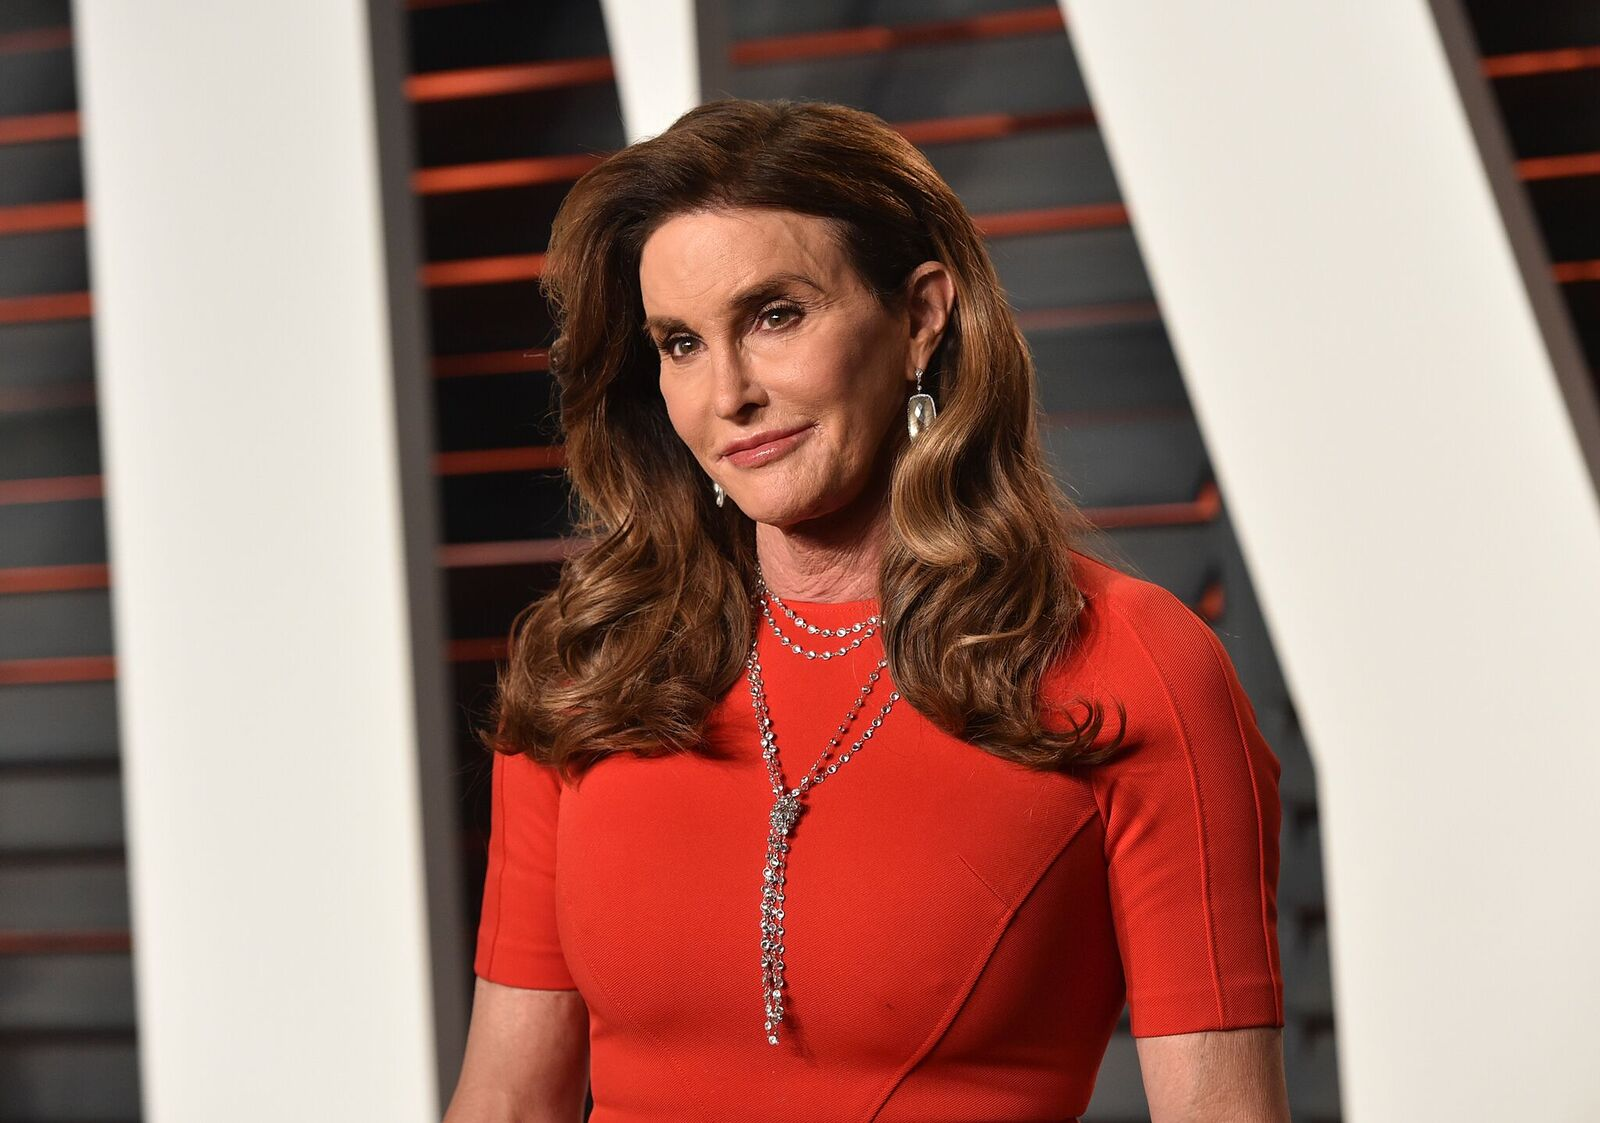 TV personality Caitlyn Jenner arrives at the 2016 Vanity Fair Oscar Party Hosted By Graydon Carter at Wallis Annenberg Center for the Performing Arts on February 28, 2016 in Beverly Hills, California | Photo: Getty Images